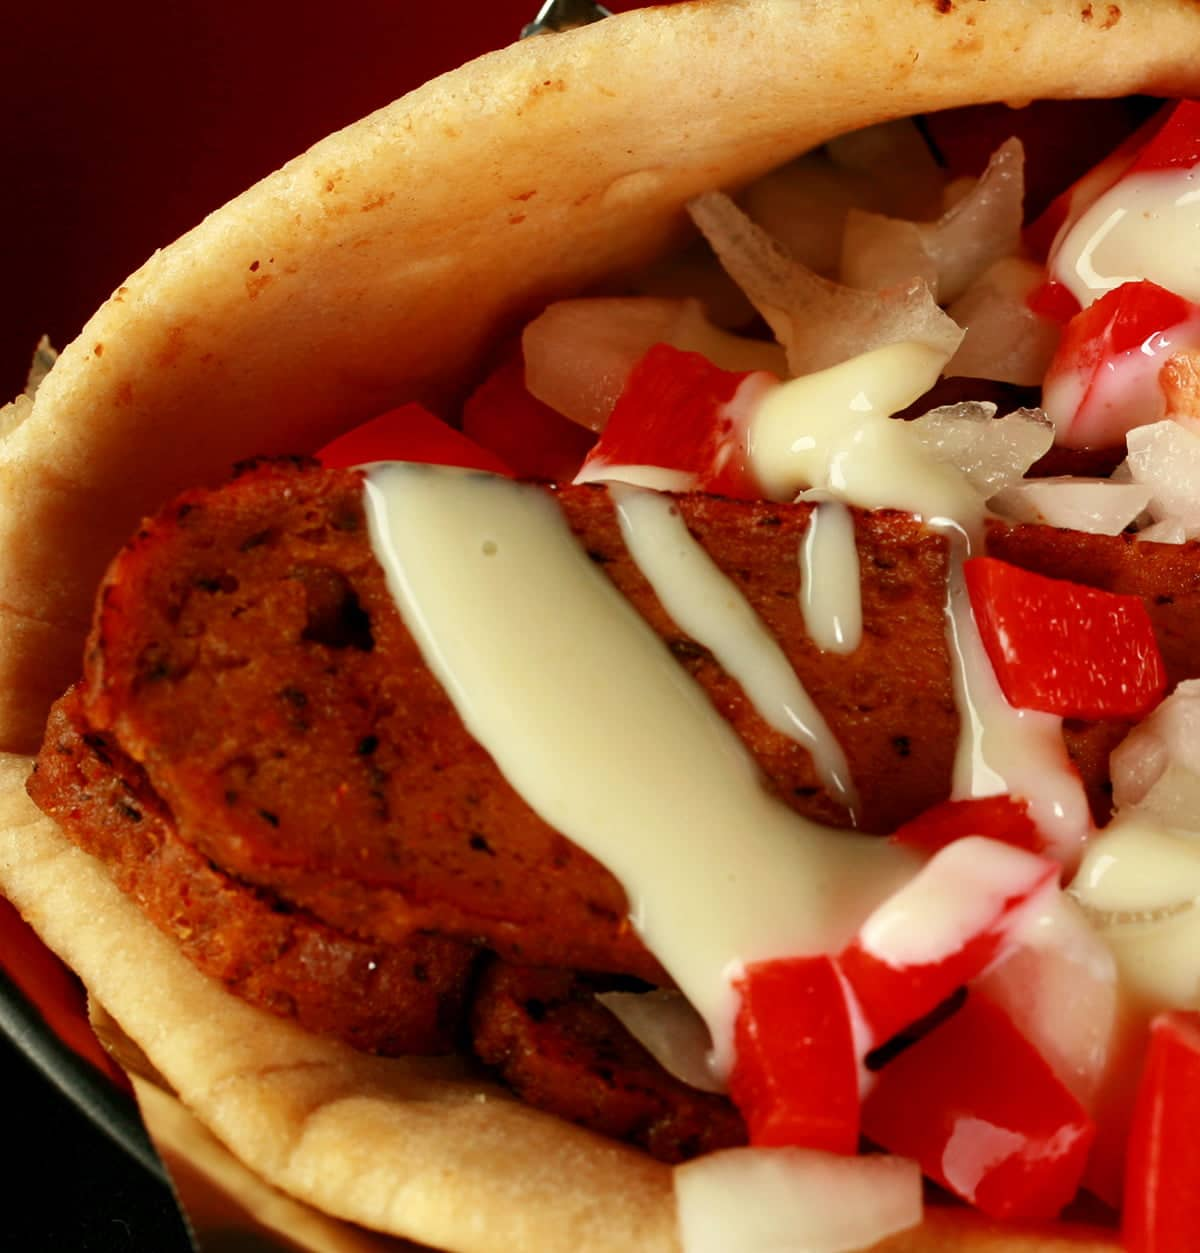 "Close up view of a vegetarian donair - a pita bread folded around a pile of vegan donair ""meat"" slices, chopped red peppers, and donair sauce drizzled on top."